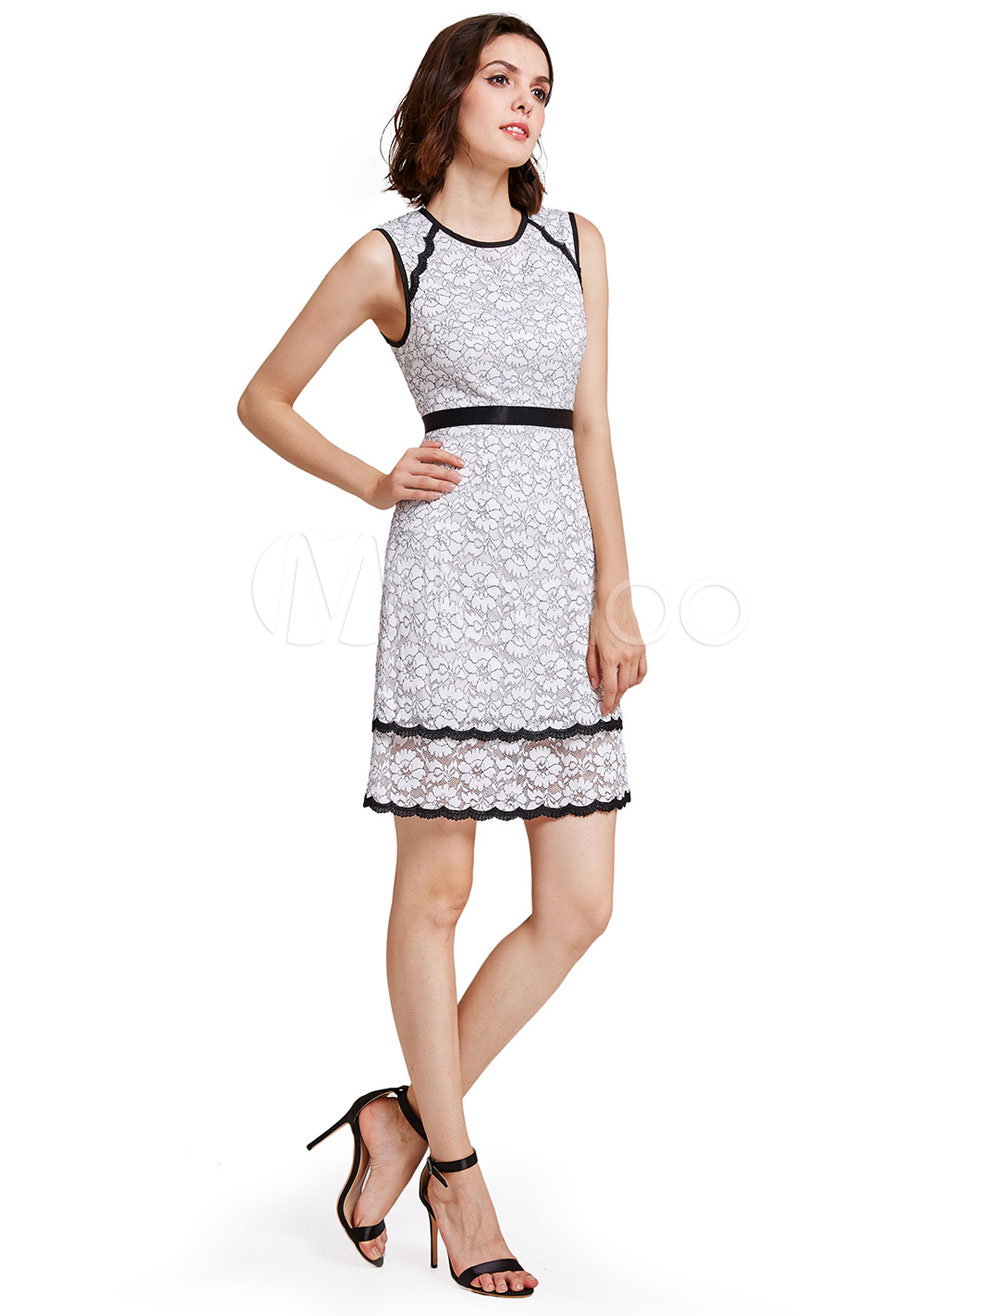 Buy White Party Dresses Lace Round Neck Sleeveless Cocktail Dresses A Line Short Prom Dresses for $57.19 in Milanoo store